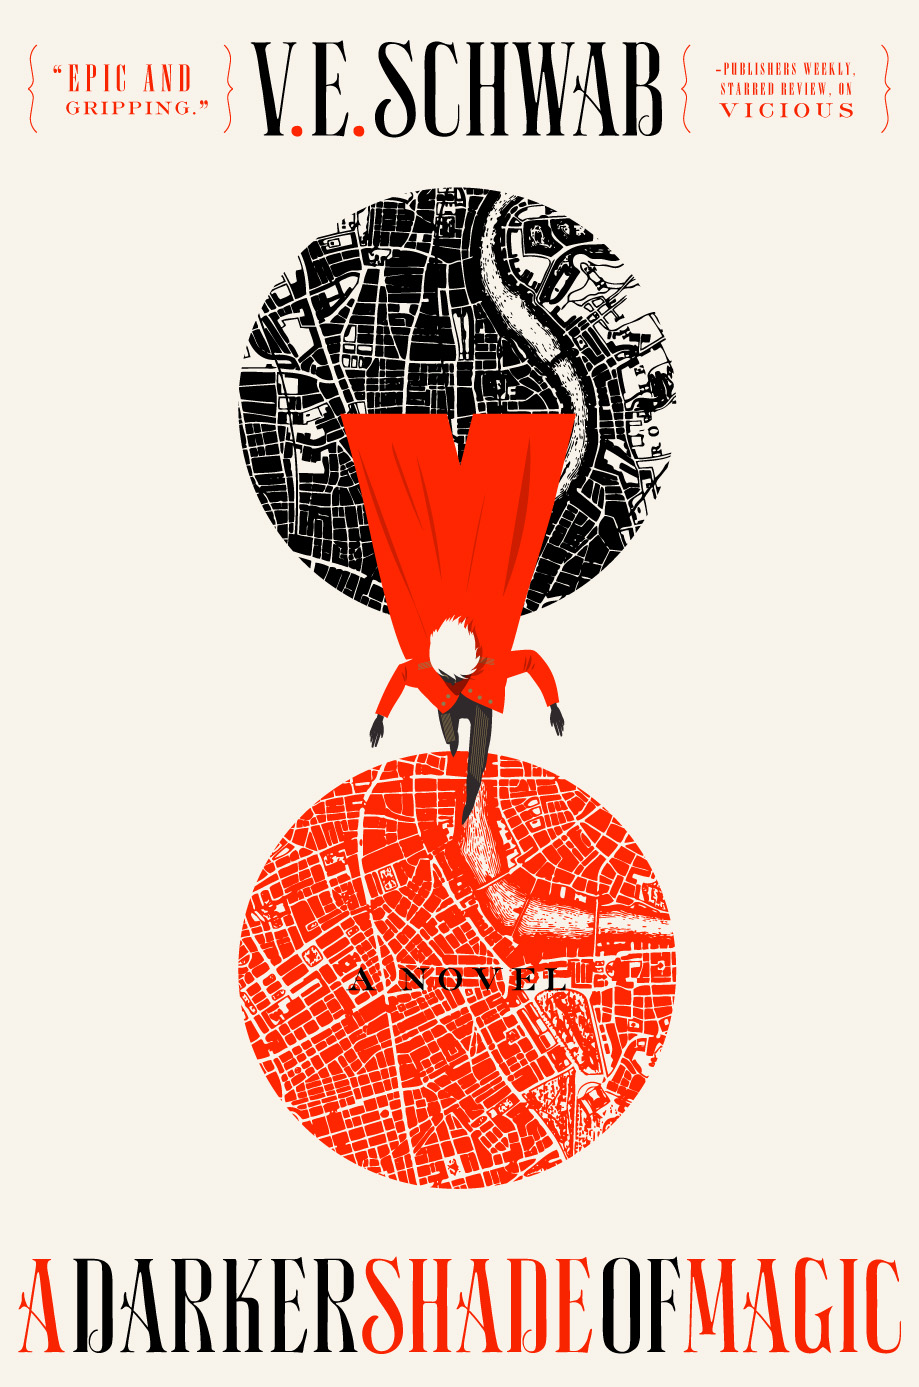 https://veschwab.files.wordpress.com/2014/05/darkershademagic_comp.jpg